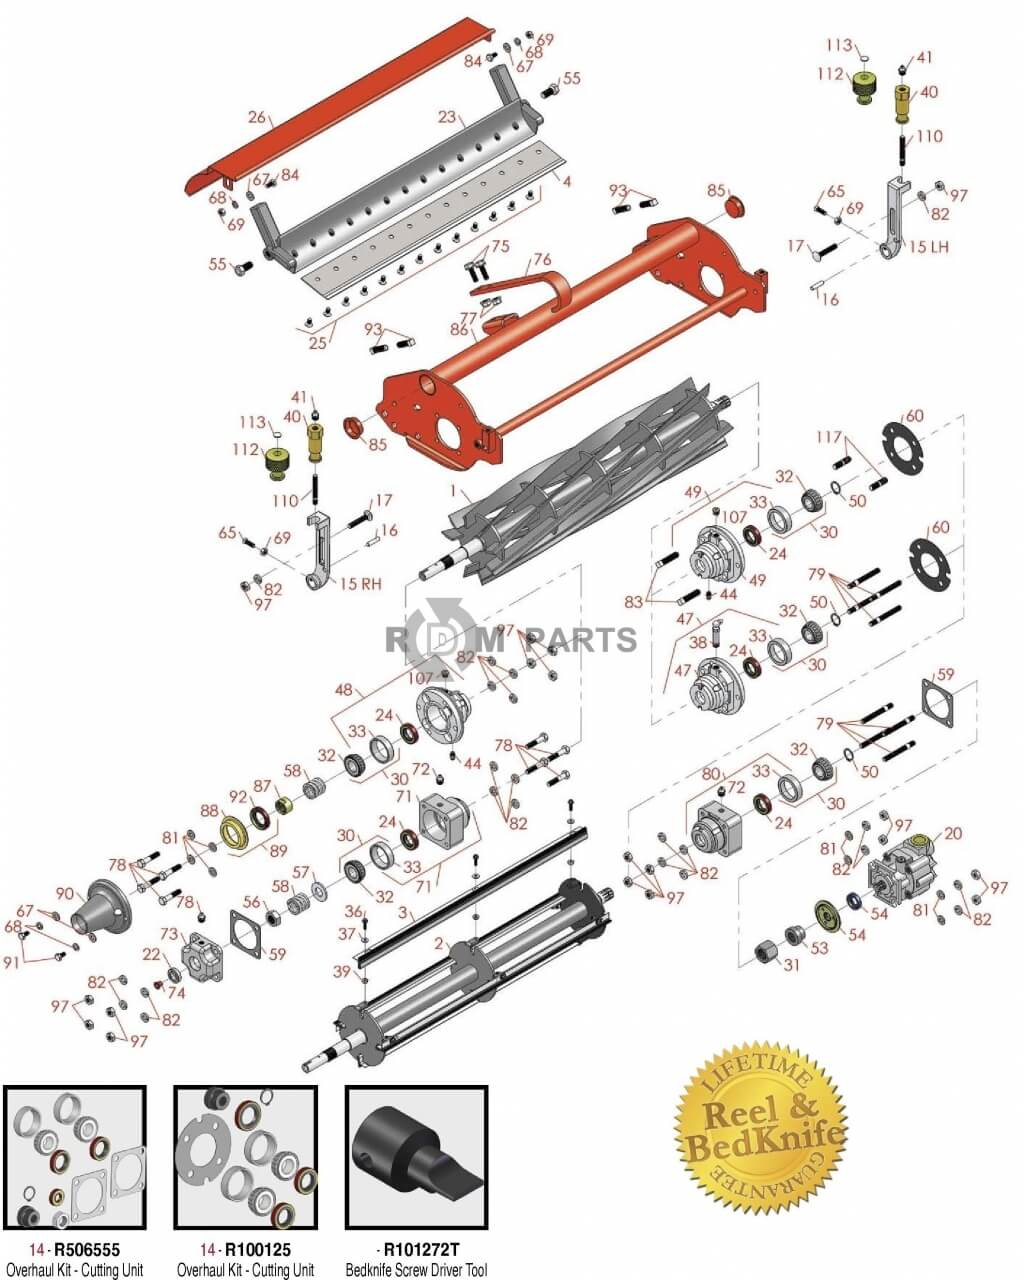 s www rdmparts com image 498_ 9dc418ca f86a GM Steering Column Wiring Diagram Light  GM Parts and Exploded Diagrams 1972 Chevy C10 Wiring-Diagram 1994 Chevrolet Kodiak Wiring-Diagram